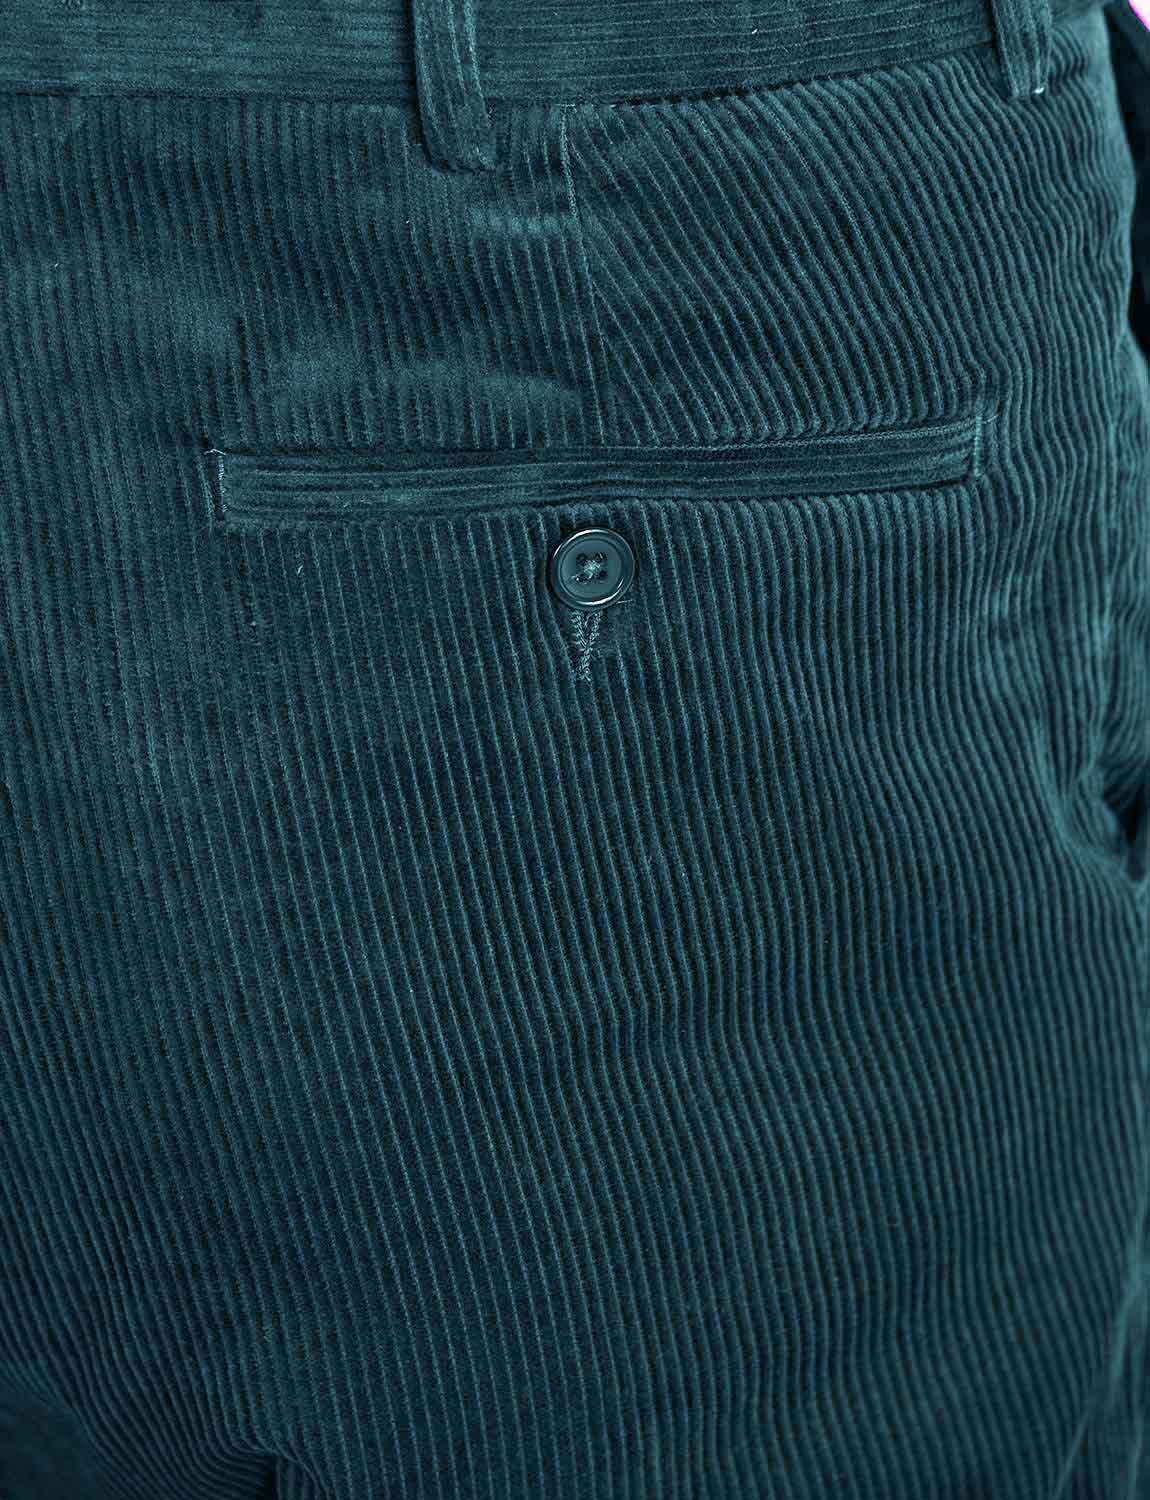 Mens Corduroy Cotton Trouser Pants With Hidden Extra Waistband